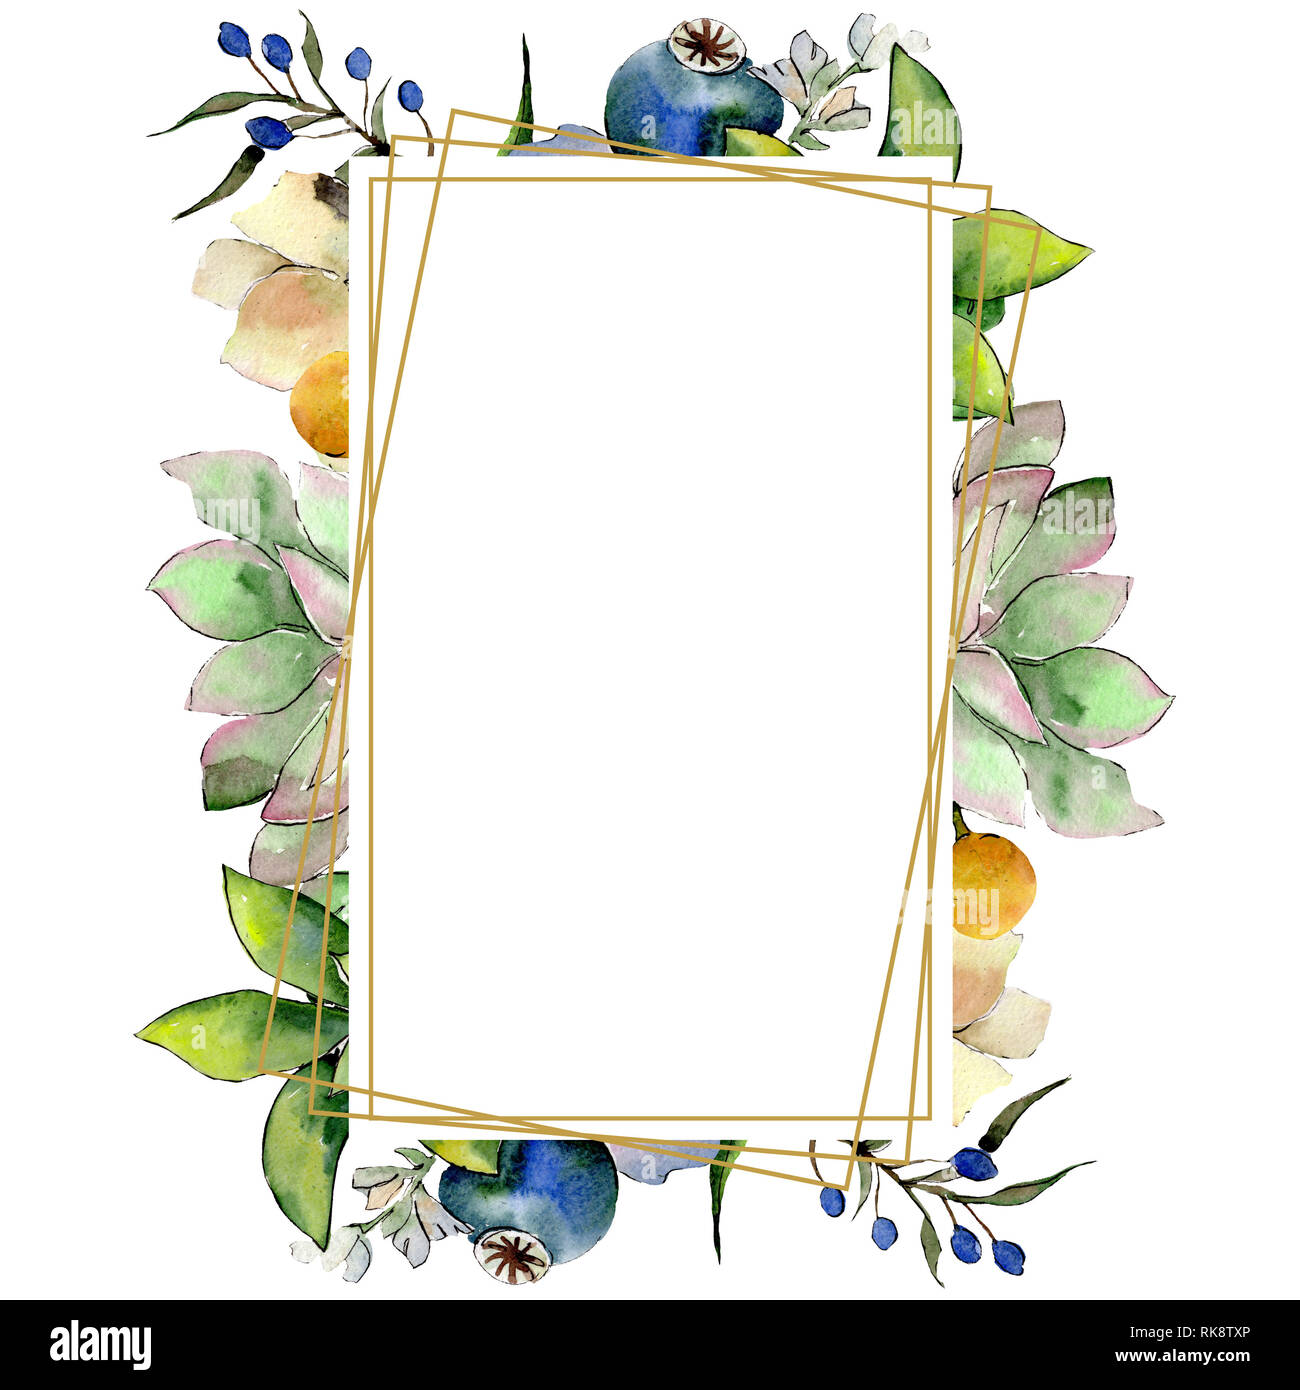 Bouquets With Succulent Botanical Flowers Watercolor Background Illustration Set Frame Border Crystal Ornament Square Stock Photo Alamy